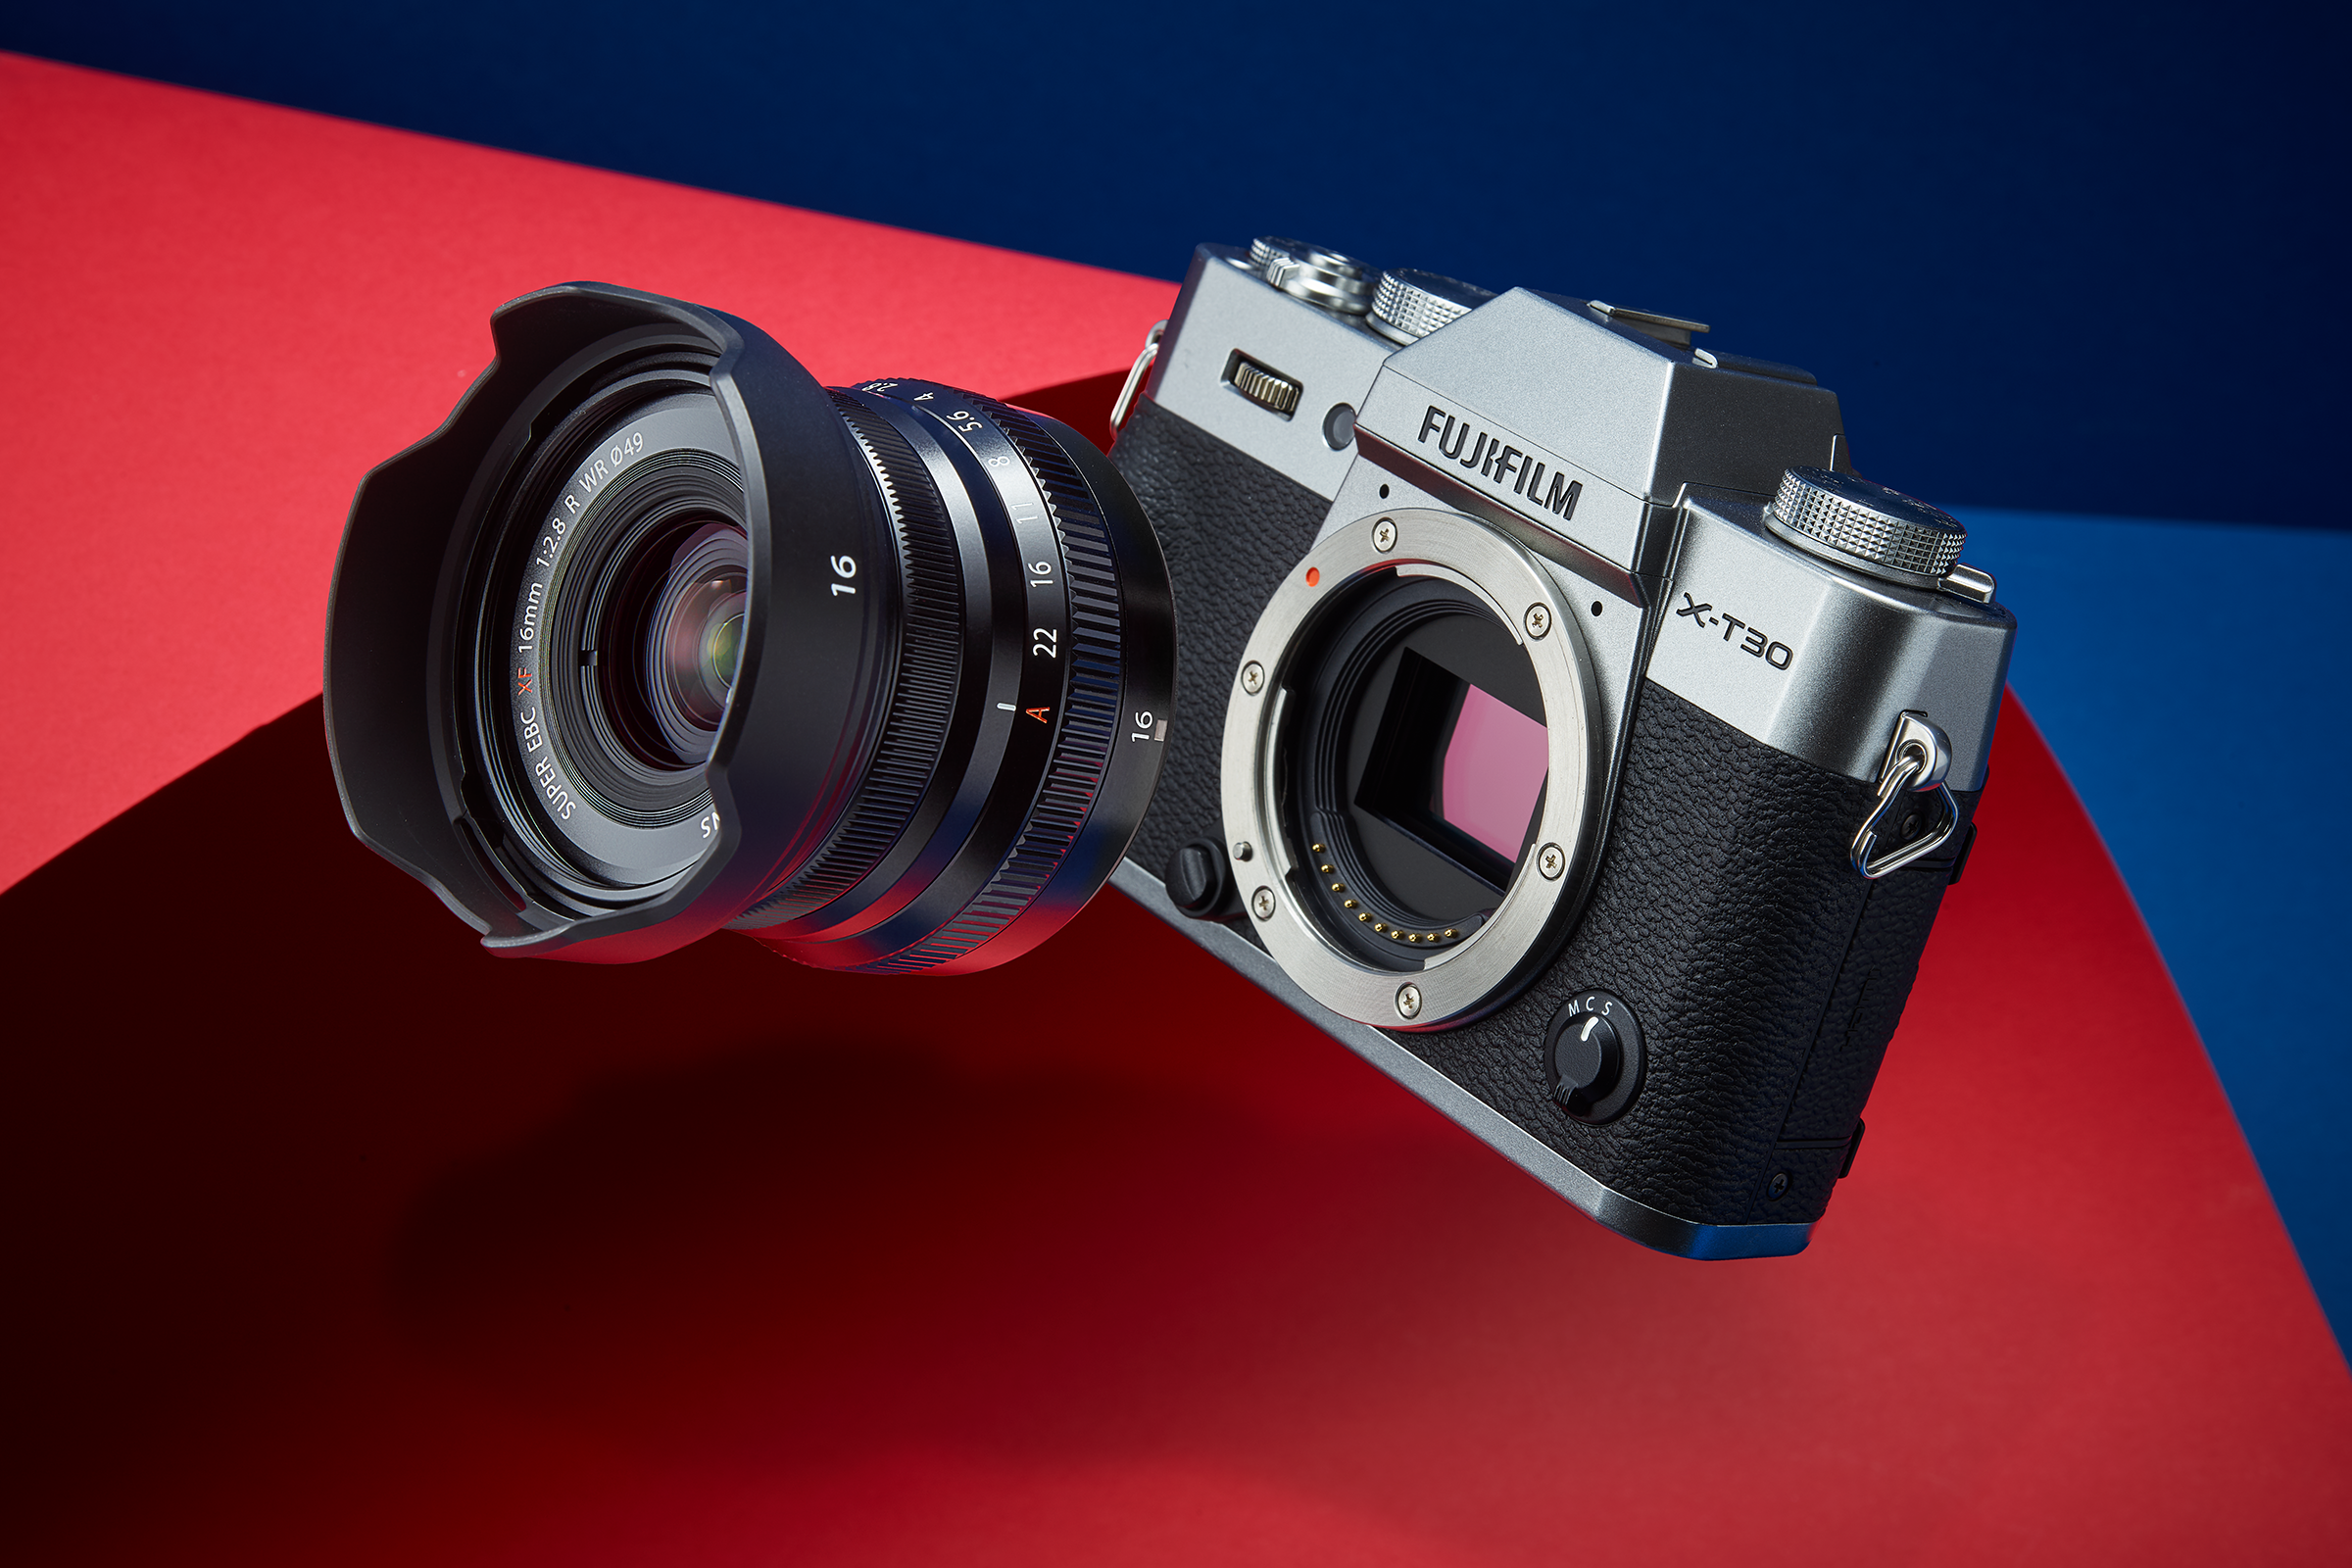 Fujifilm X-T30 performance review: How good are the X Series